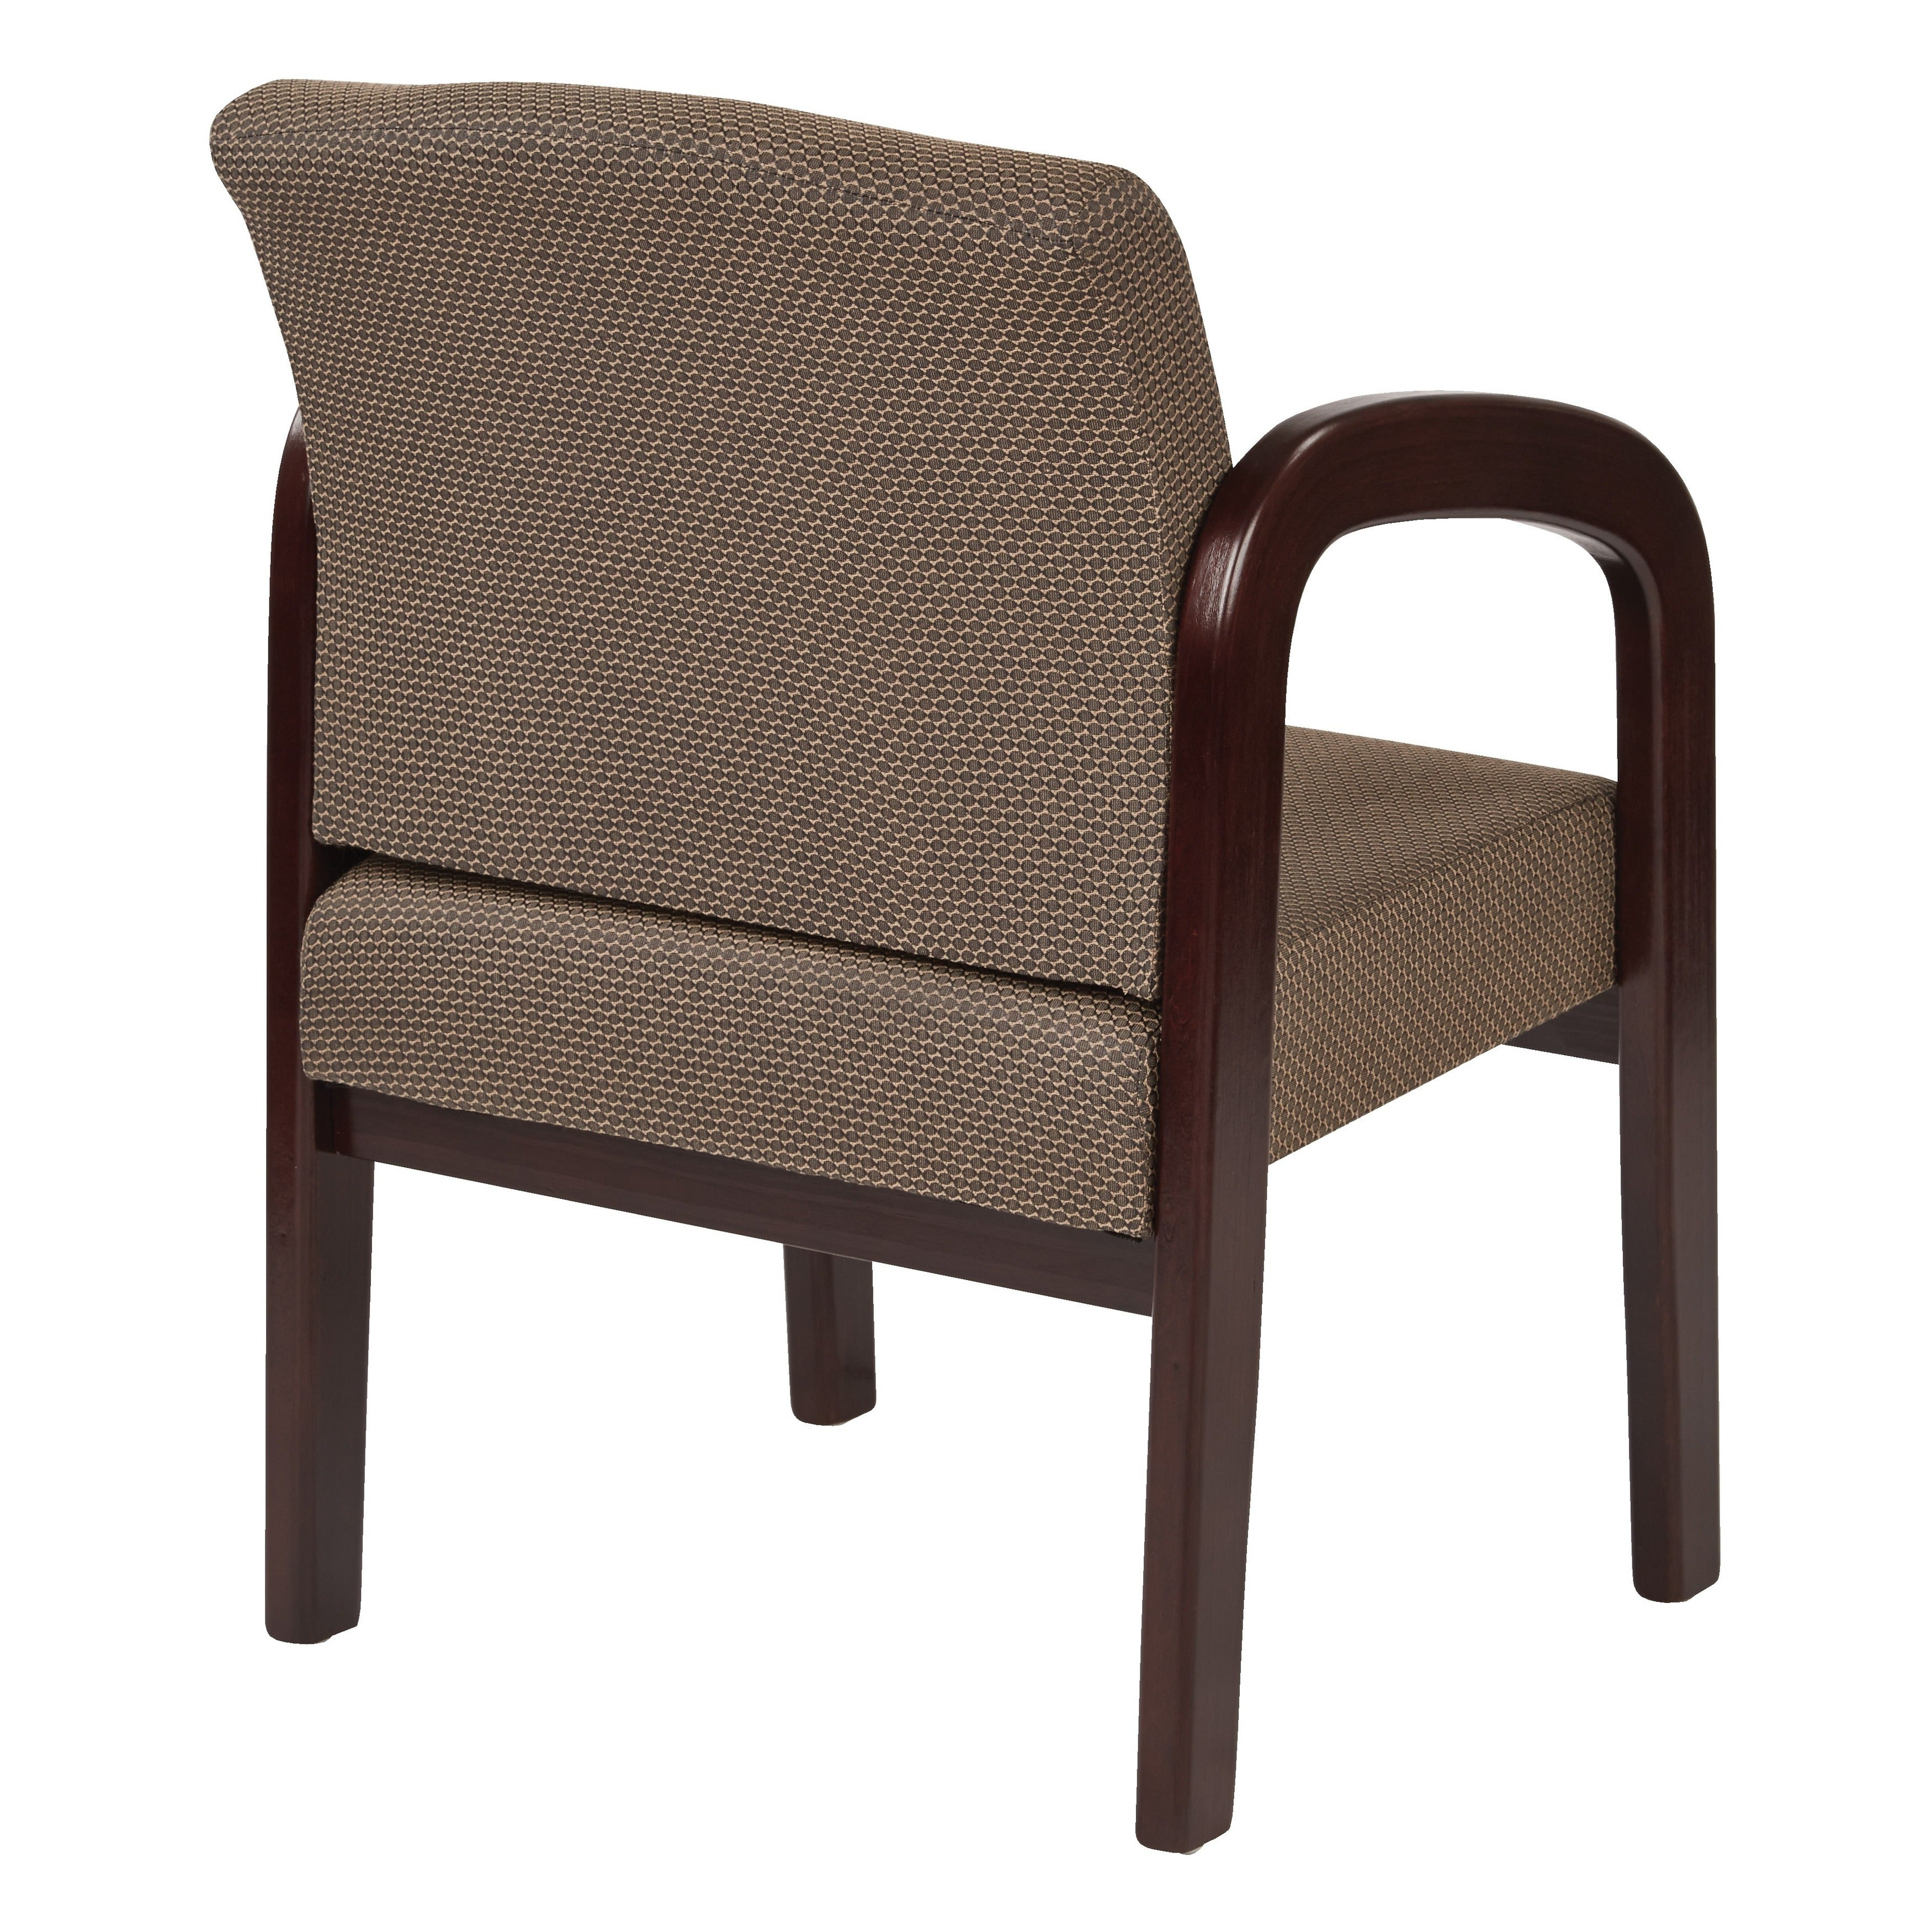 Shop office star mahogany finish visitors chair free shipping today overstock com 2619666